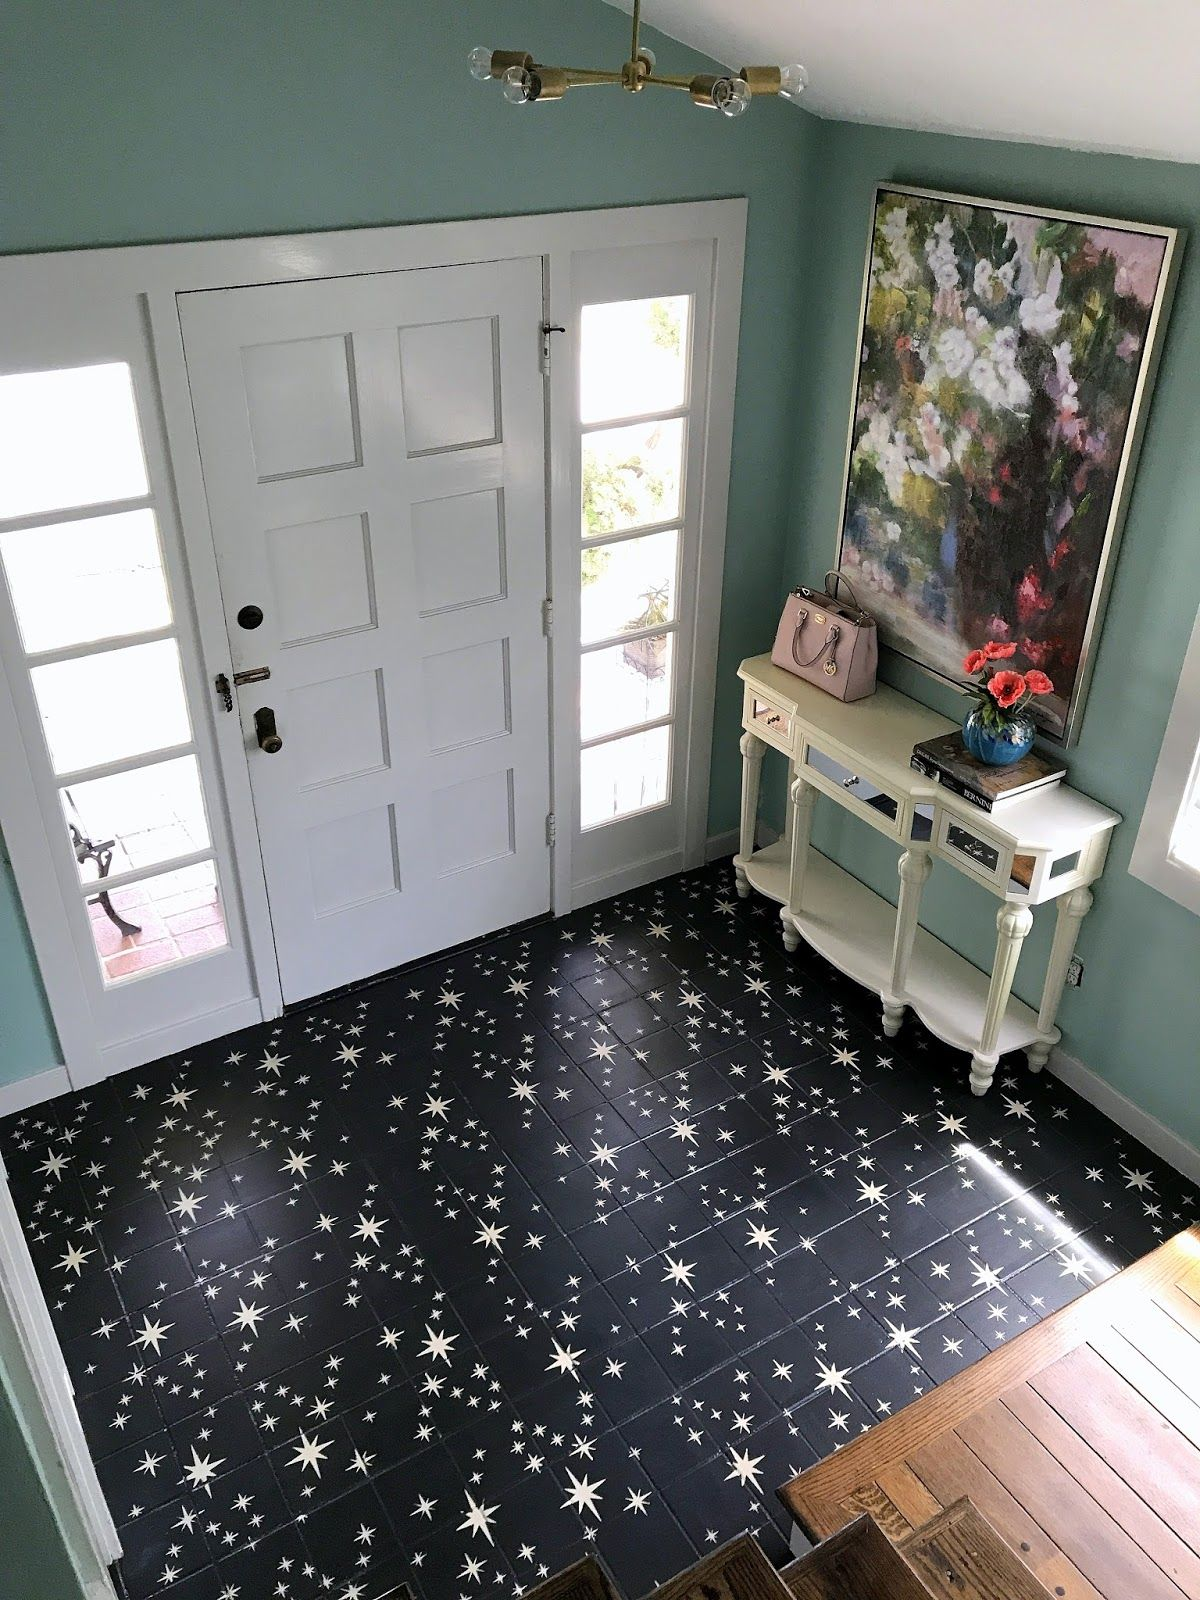 What Is Chalk Paint Anyway Painting Tile Floors Painting Bathroom Tiles Painting Tile